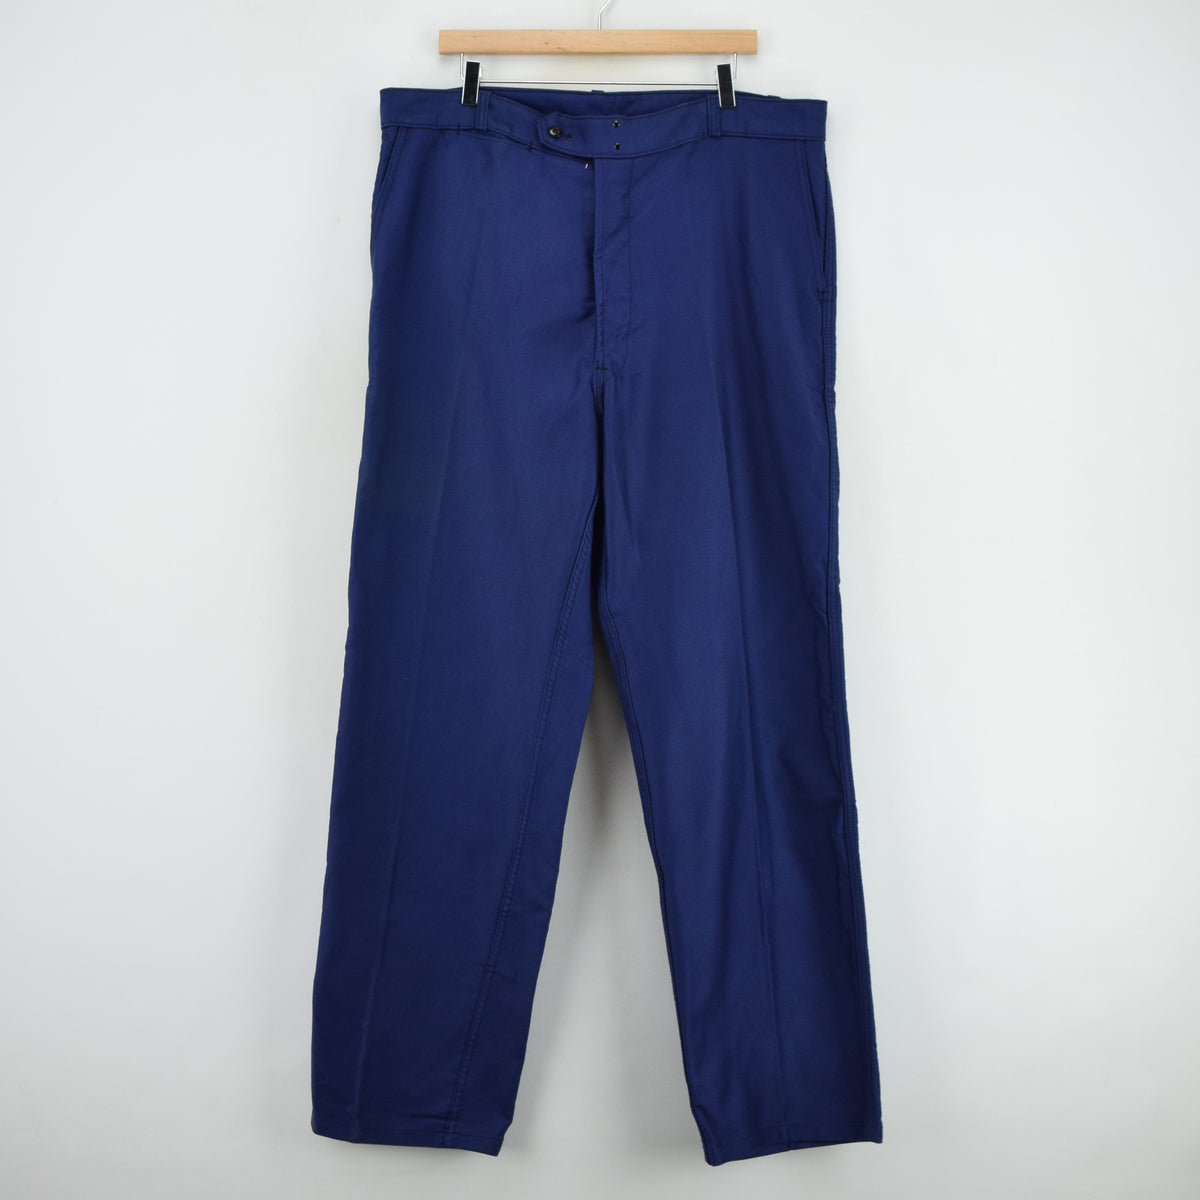 Vintage Adolphe Lafont Workwear Blue French Work Trousers 38 W 32 L front